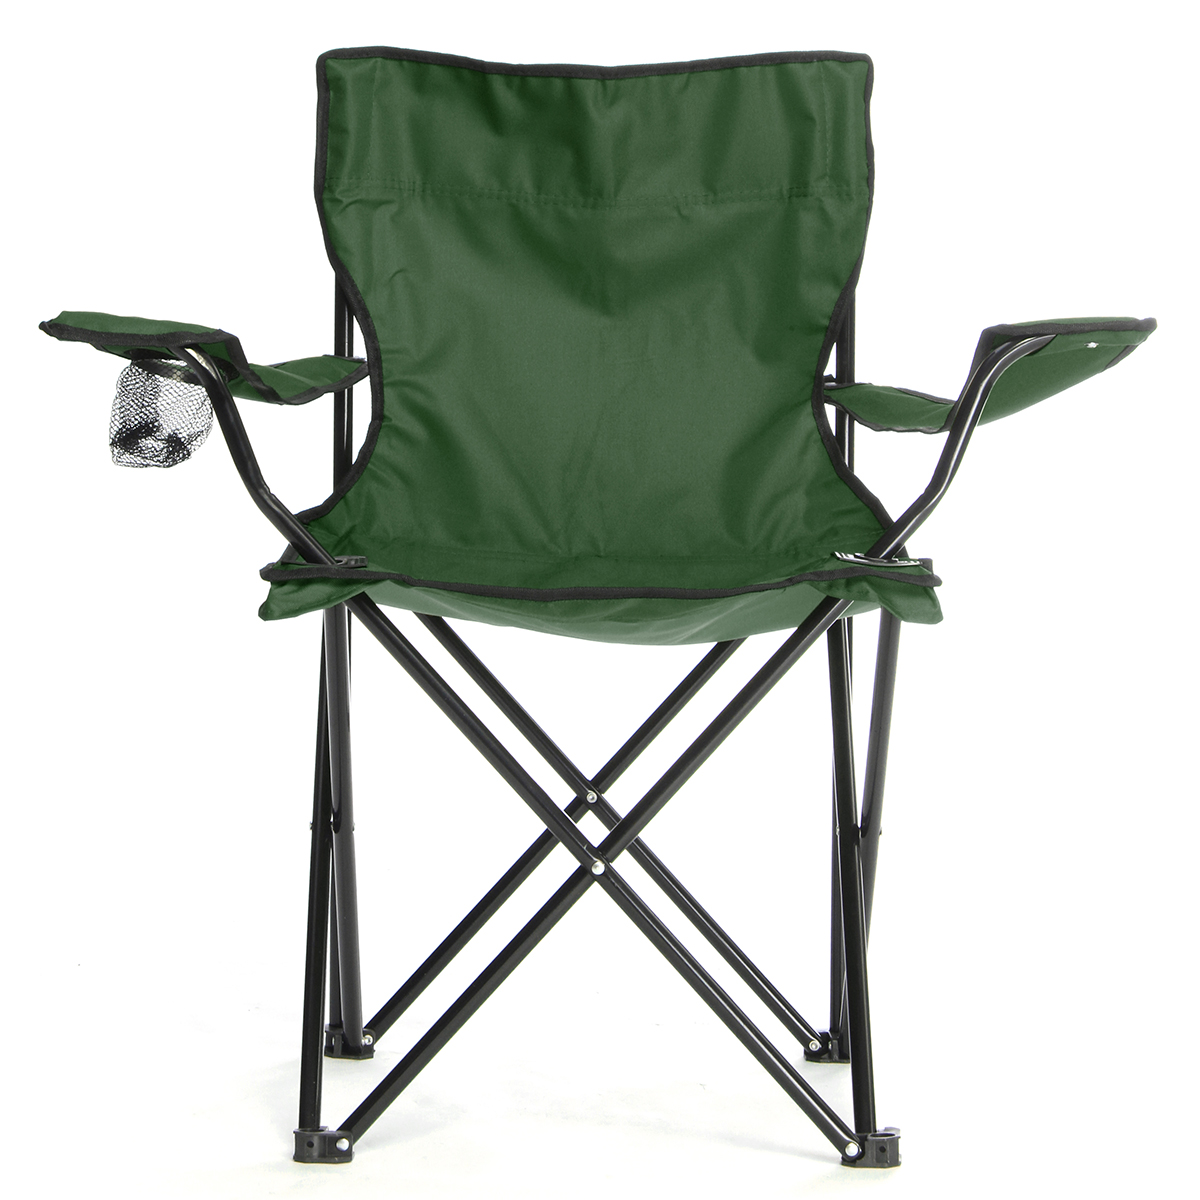 Portable Beach Chair 50x50x80cm Light Folding Camping Fishing Chair Seat Portable Beach Garden Outdoor Camping Leisure Picnic Beach Chair Tool Set